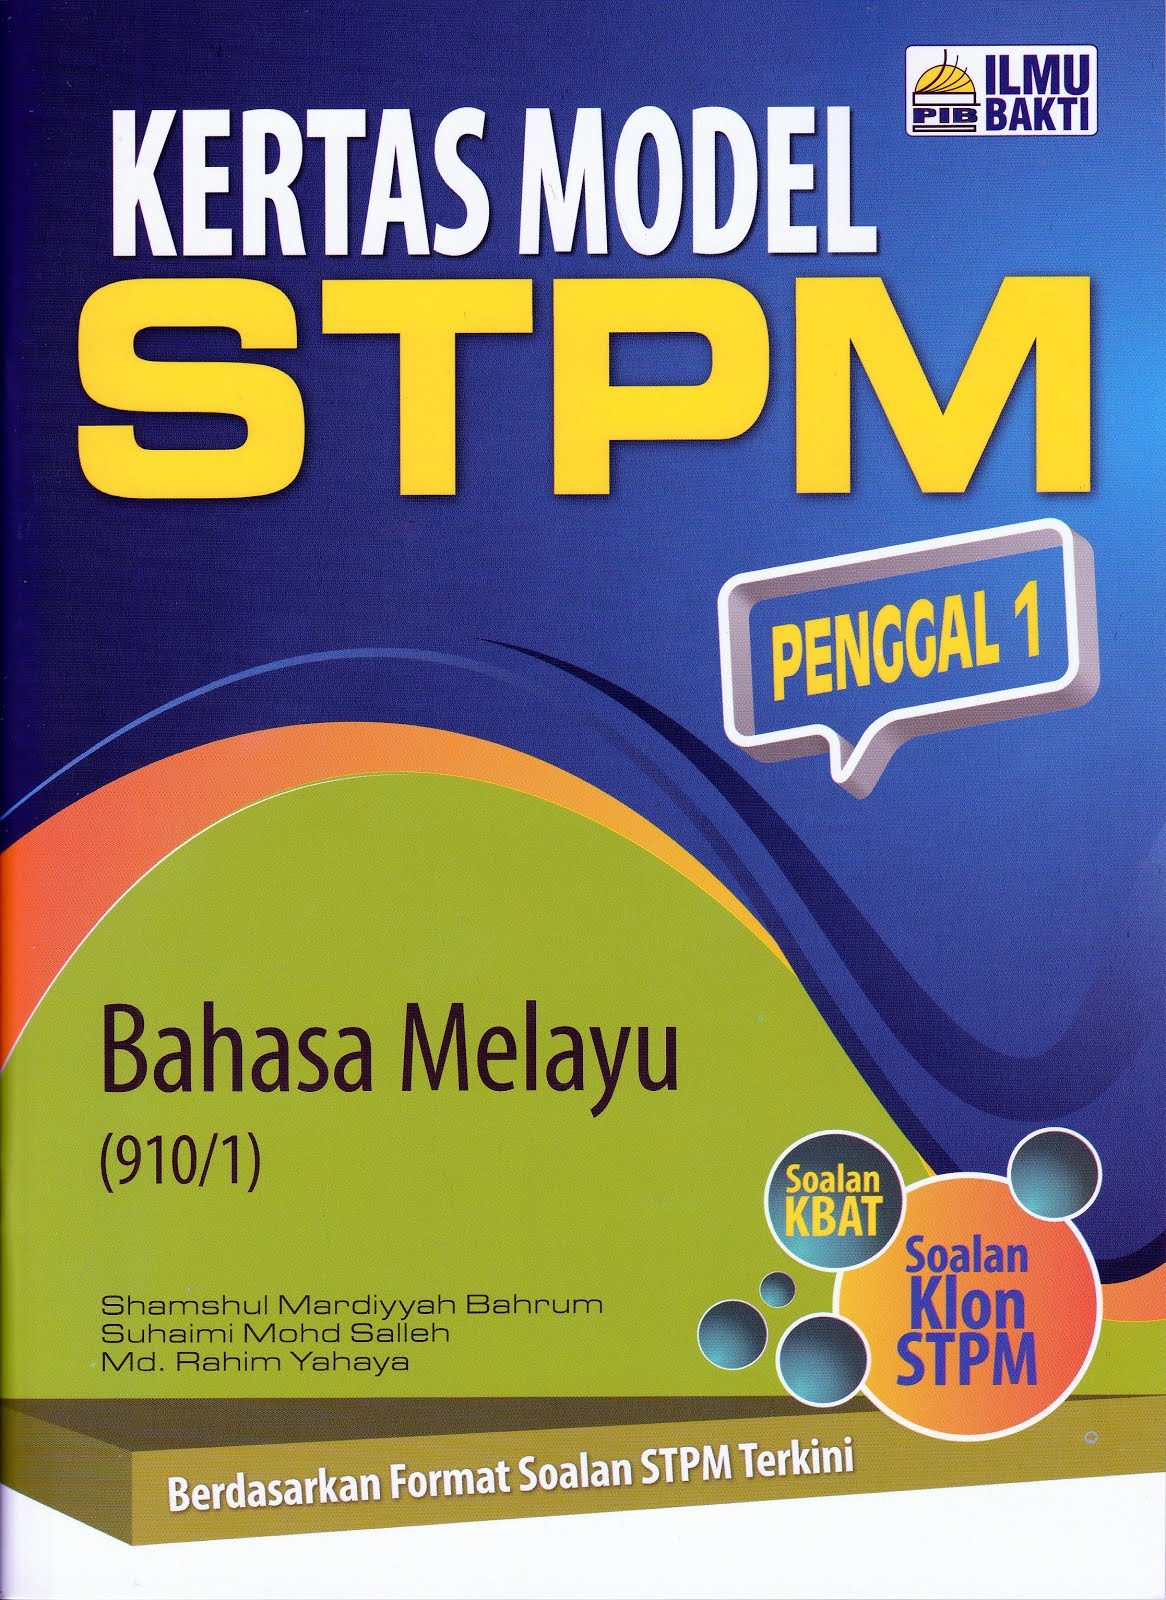 KERTAS MODEL STPM BM PENGGAL 1